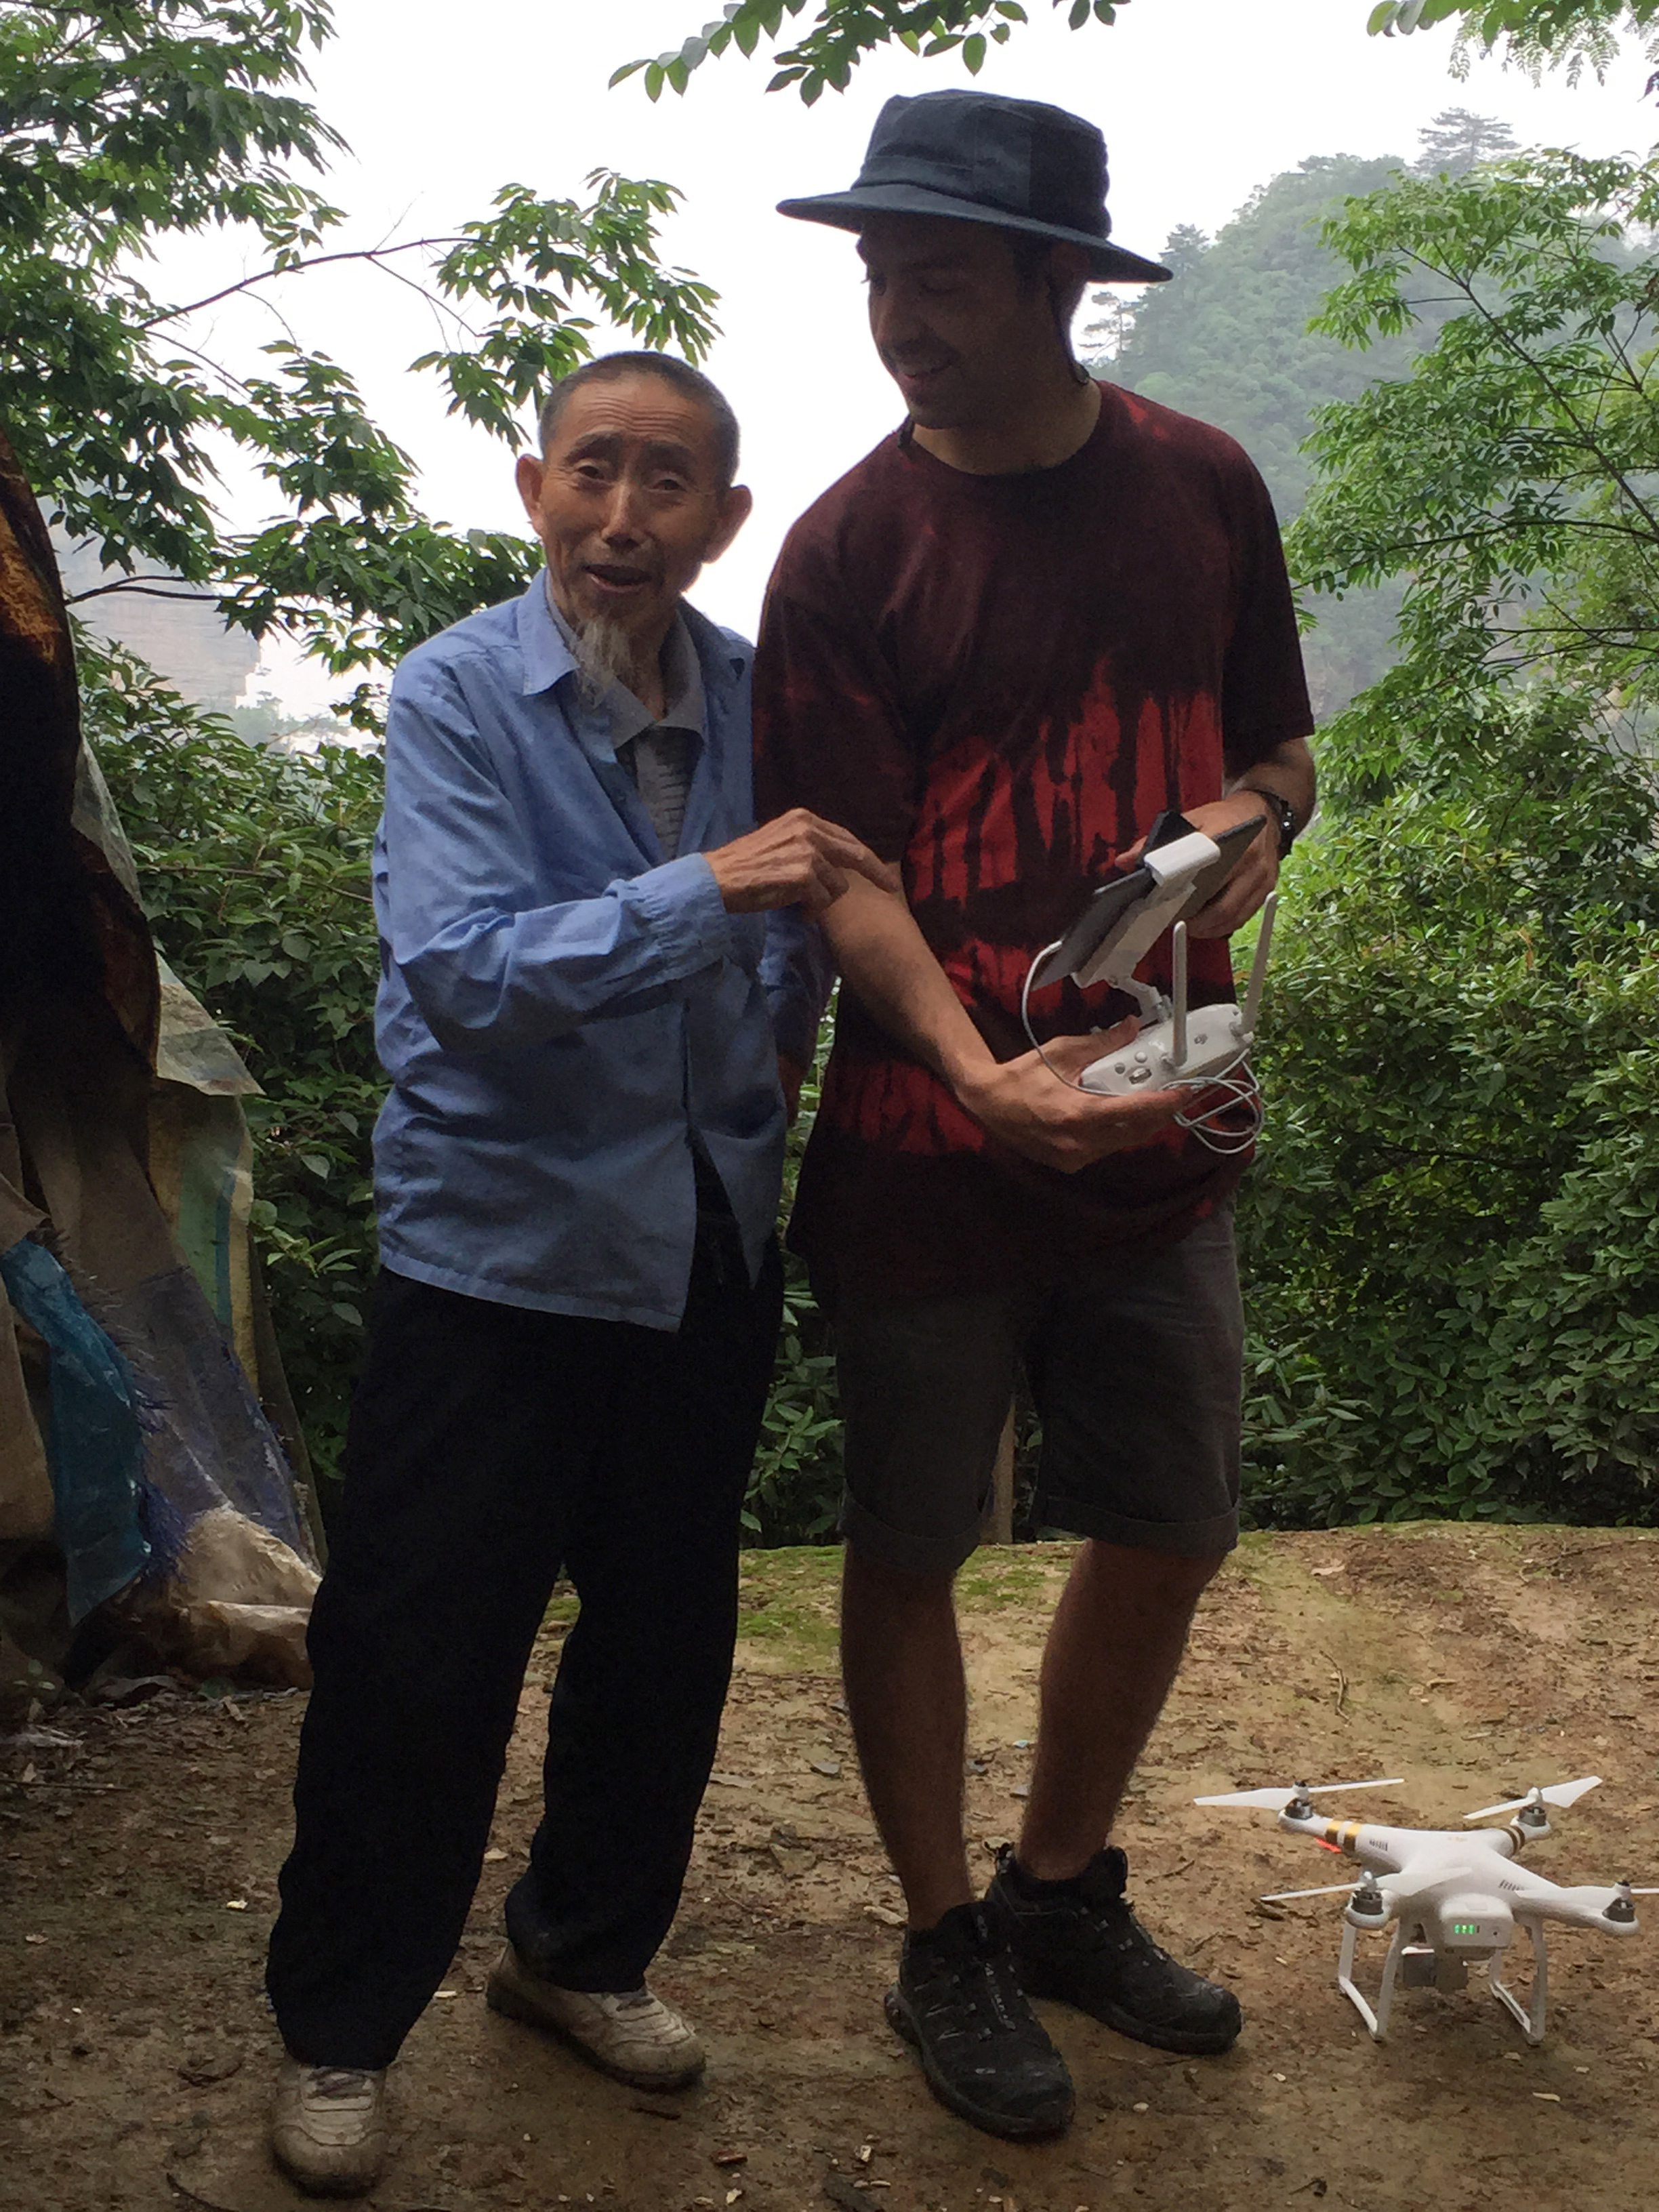 While filming in  Wulingyuan  (China), a local and I discussed the names of mountain peaks in the area.